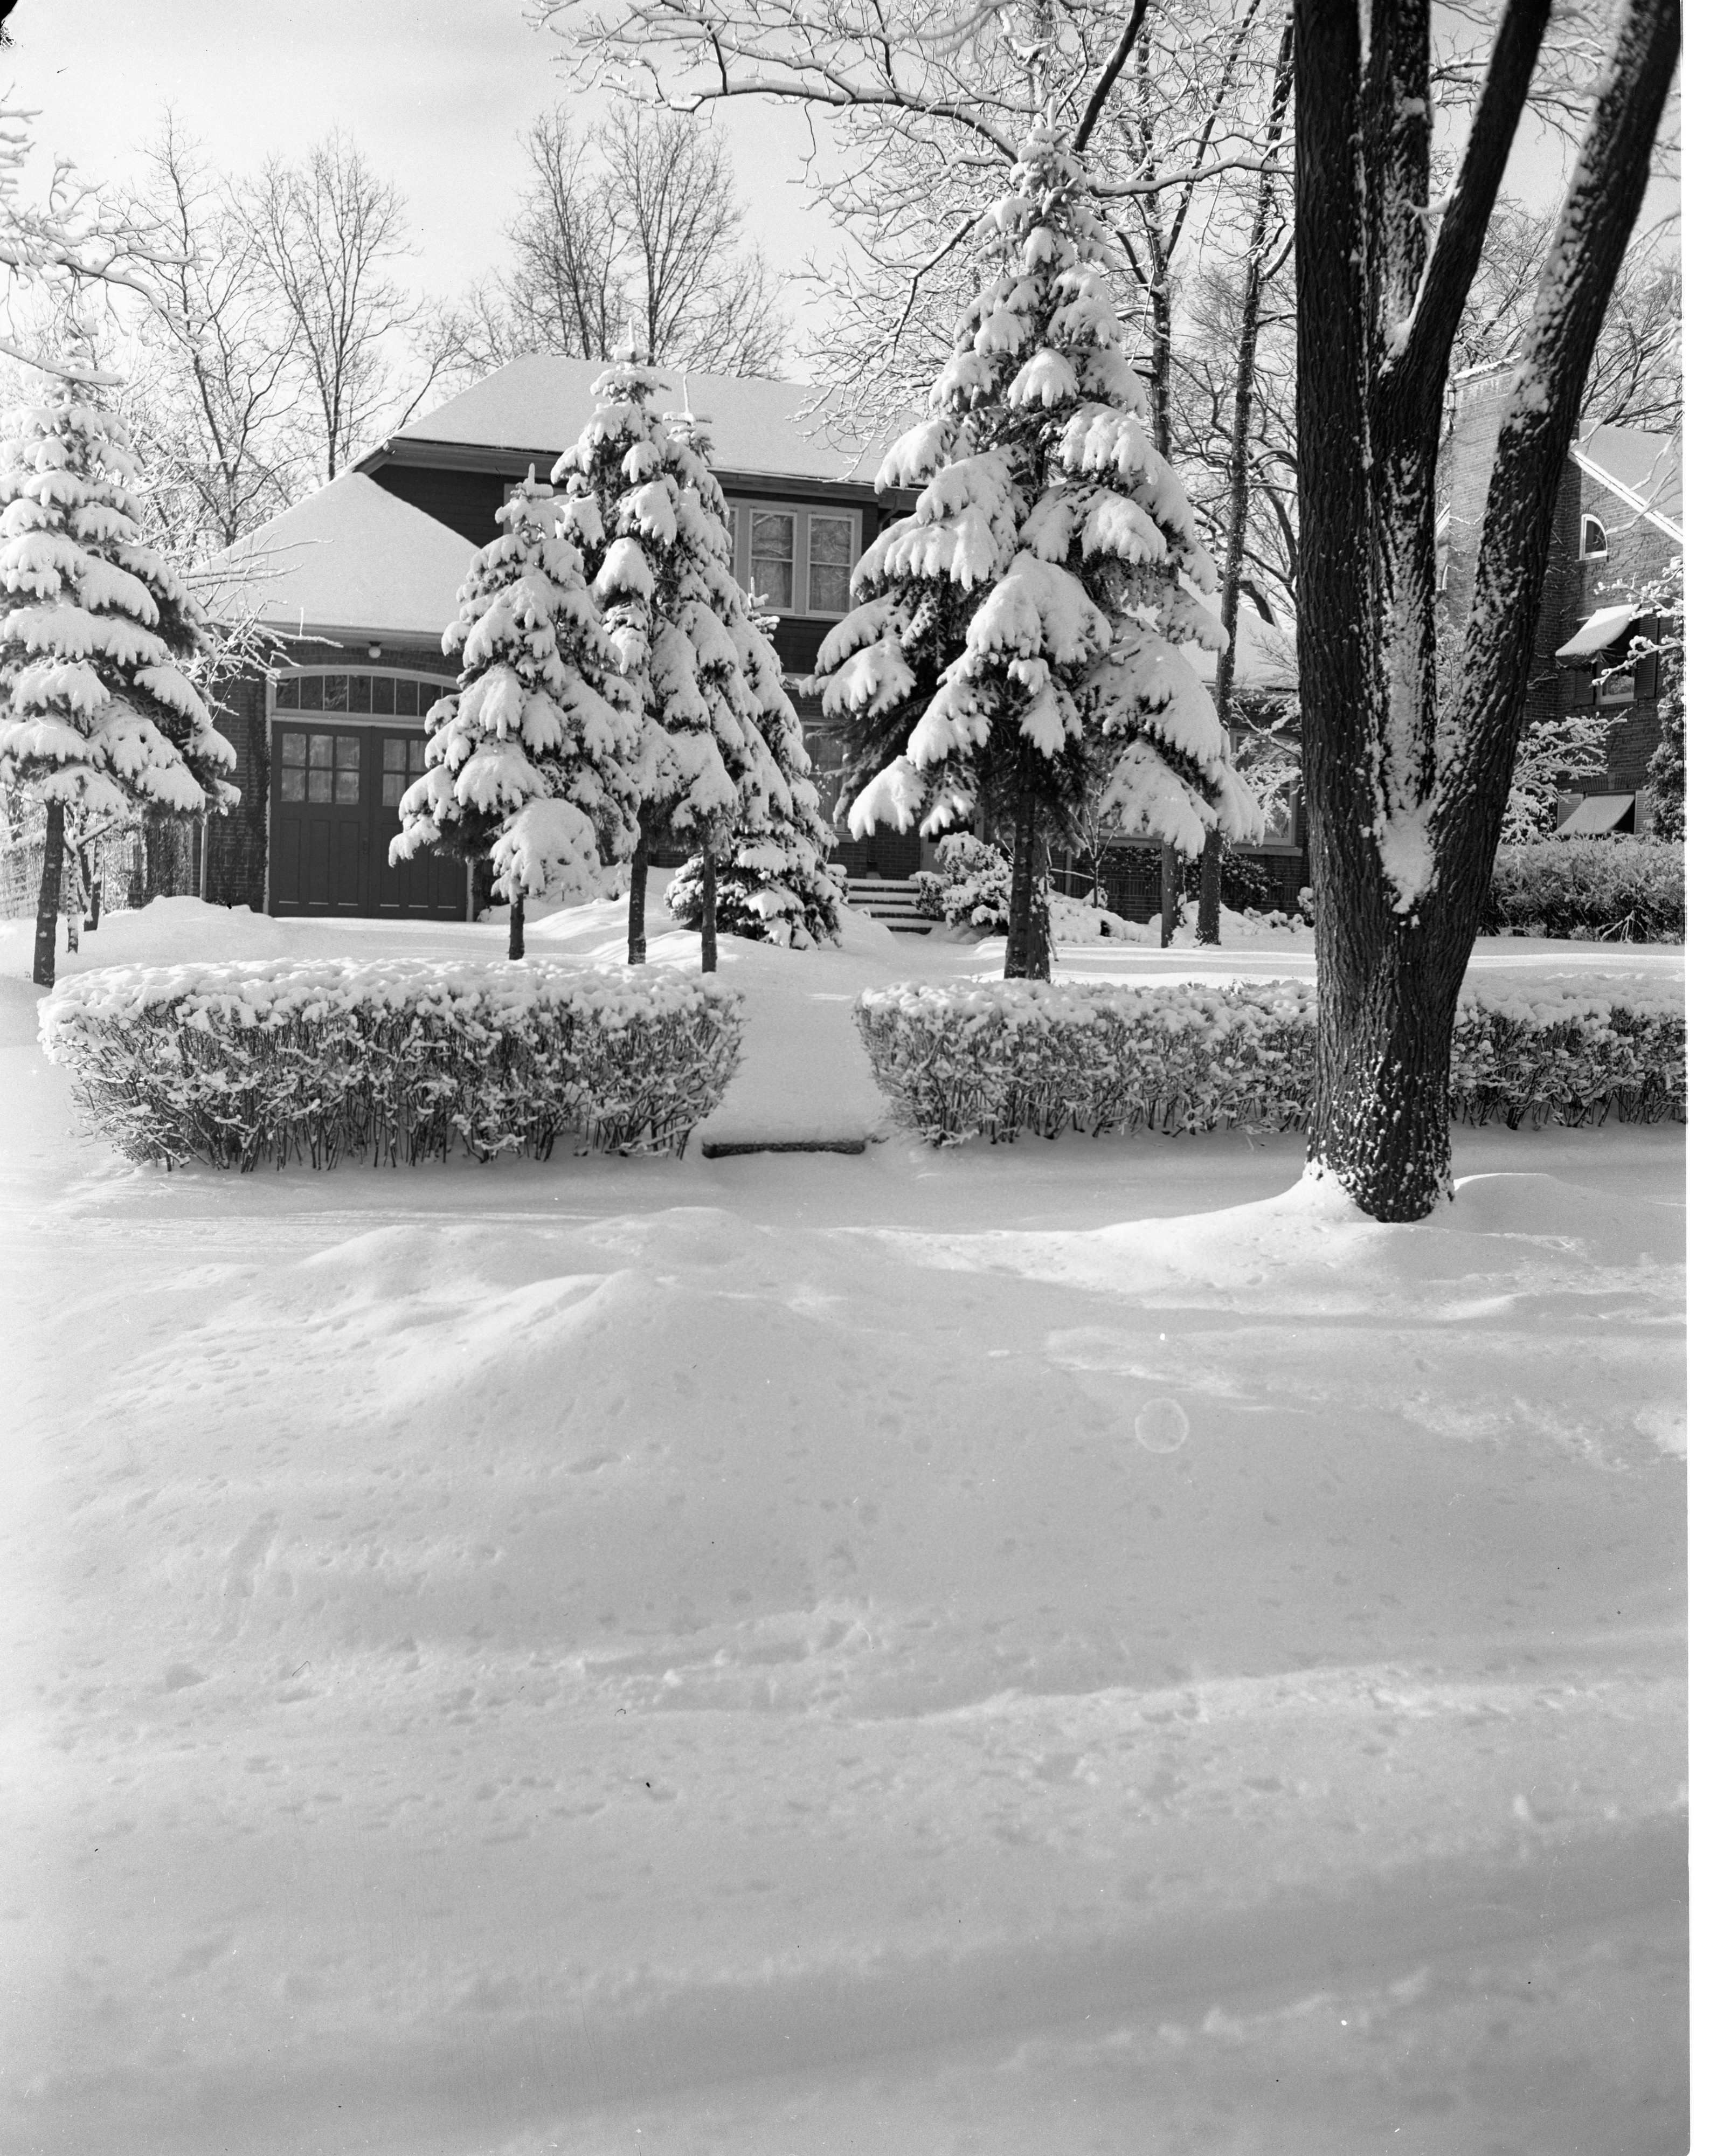 A Home Covered In Fresh Snow On Berkshire Road, February 1957 image